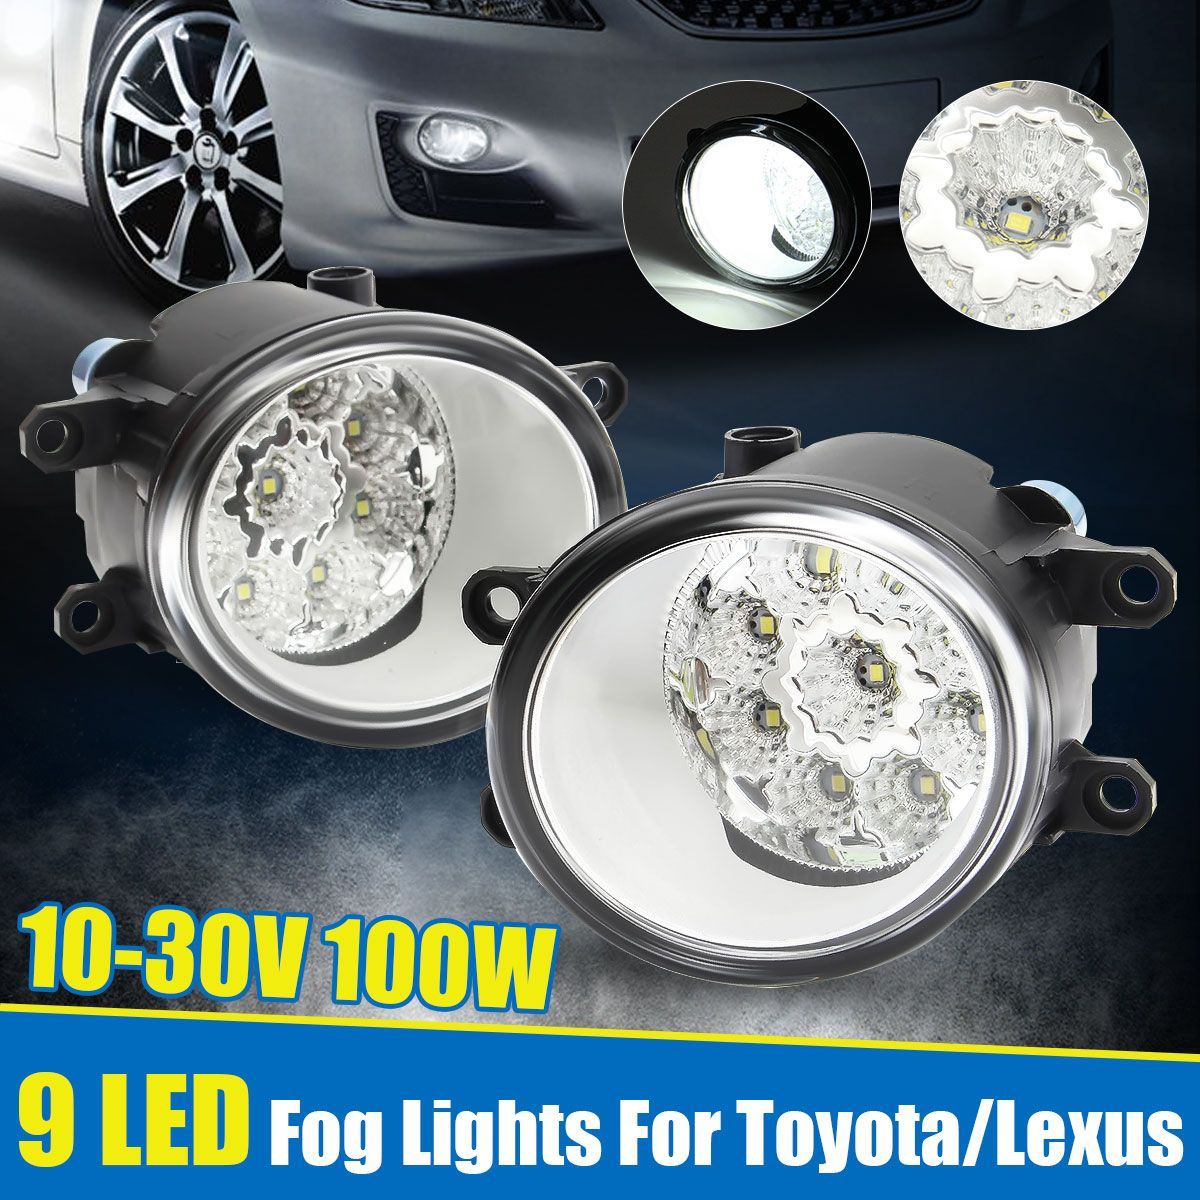 2Pcs Round Front LED Car Fog Light Lamp for Toyota Camry Corolla 2009-2013 Yaris 2006-2013 RAV4 2006-2012 for Lexus RX350/RX450